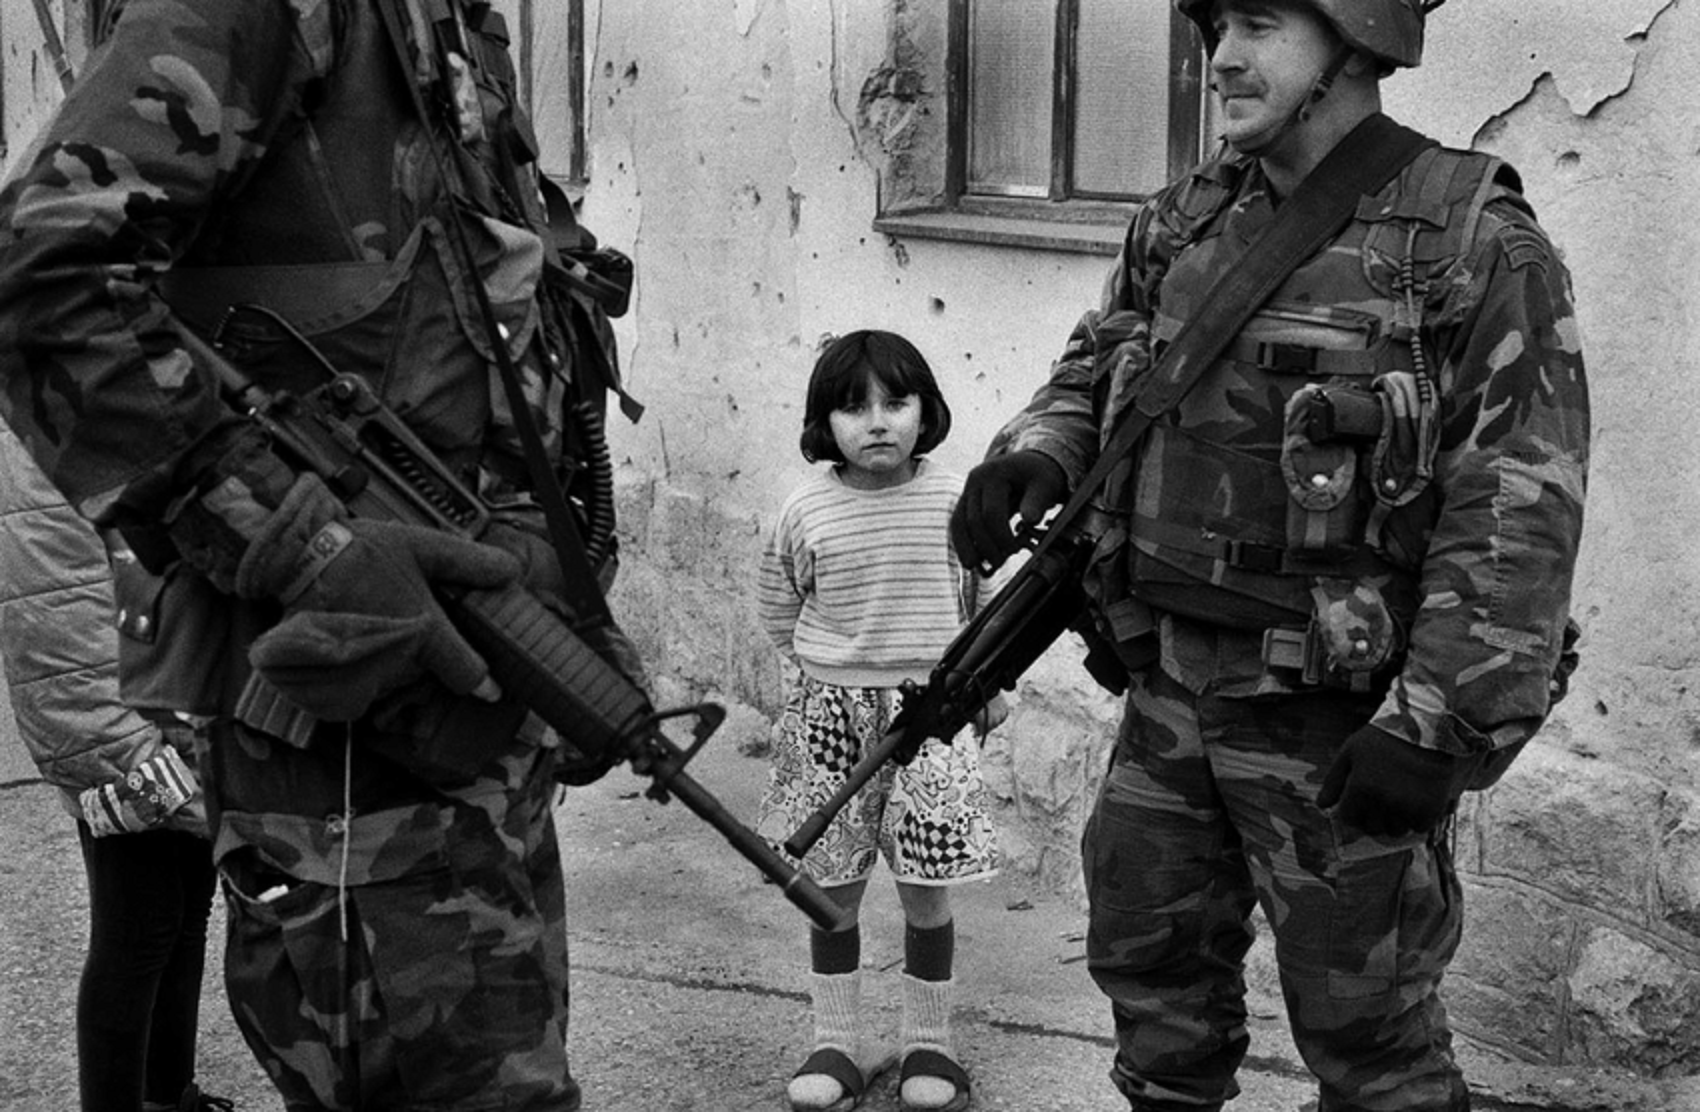 A Soldier's Guide to Bosnia